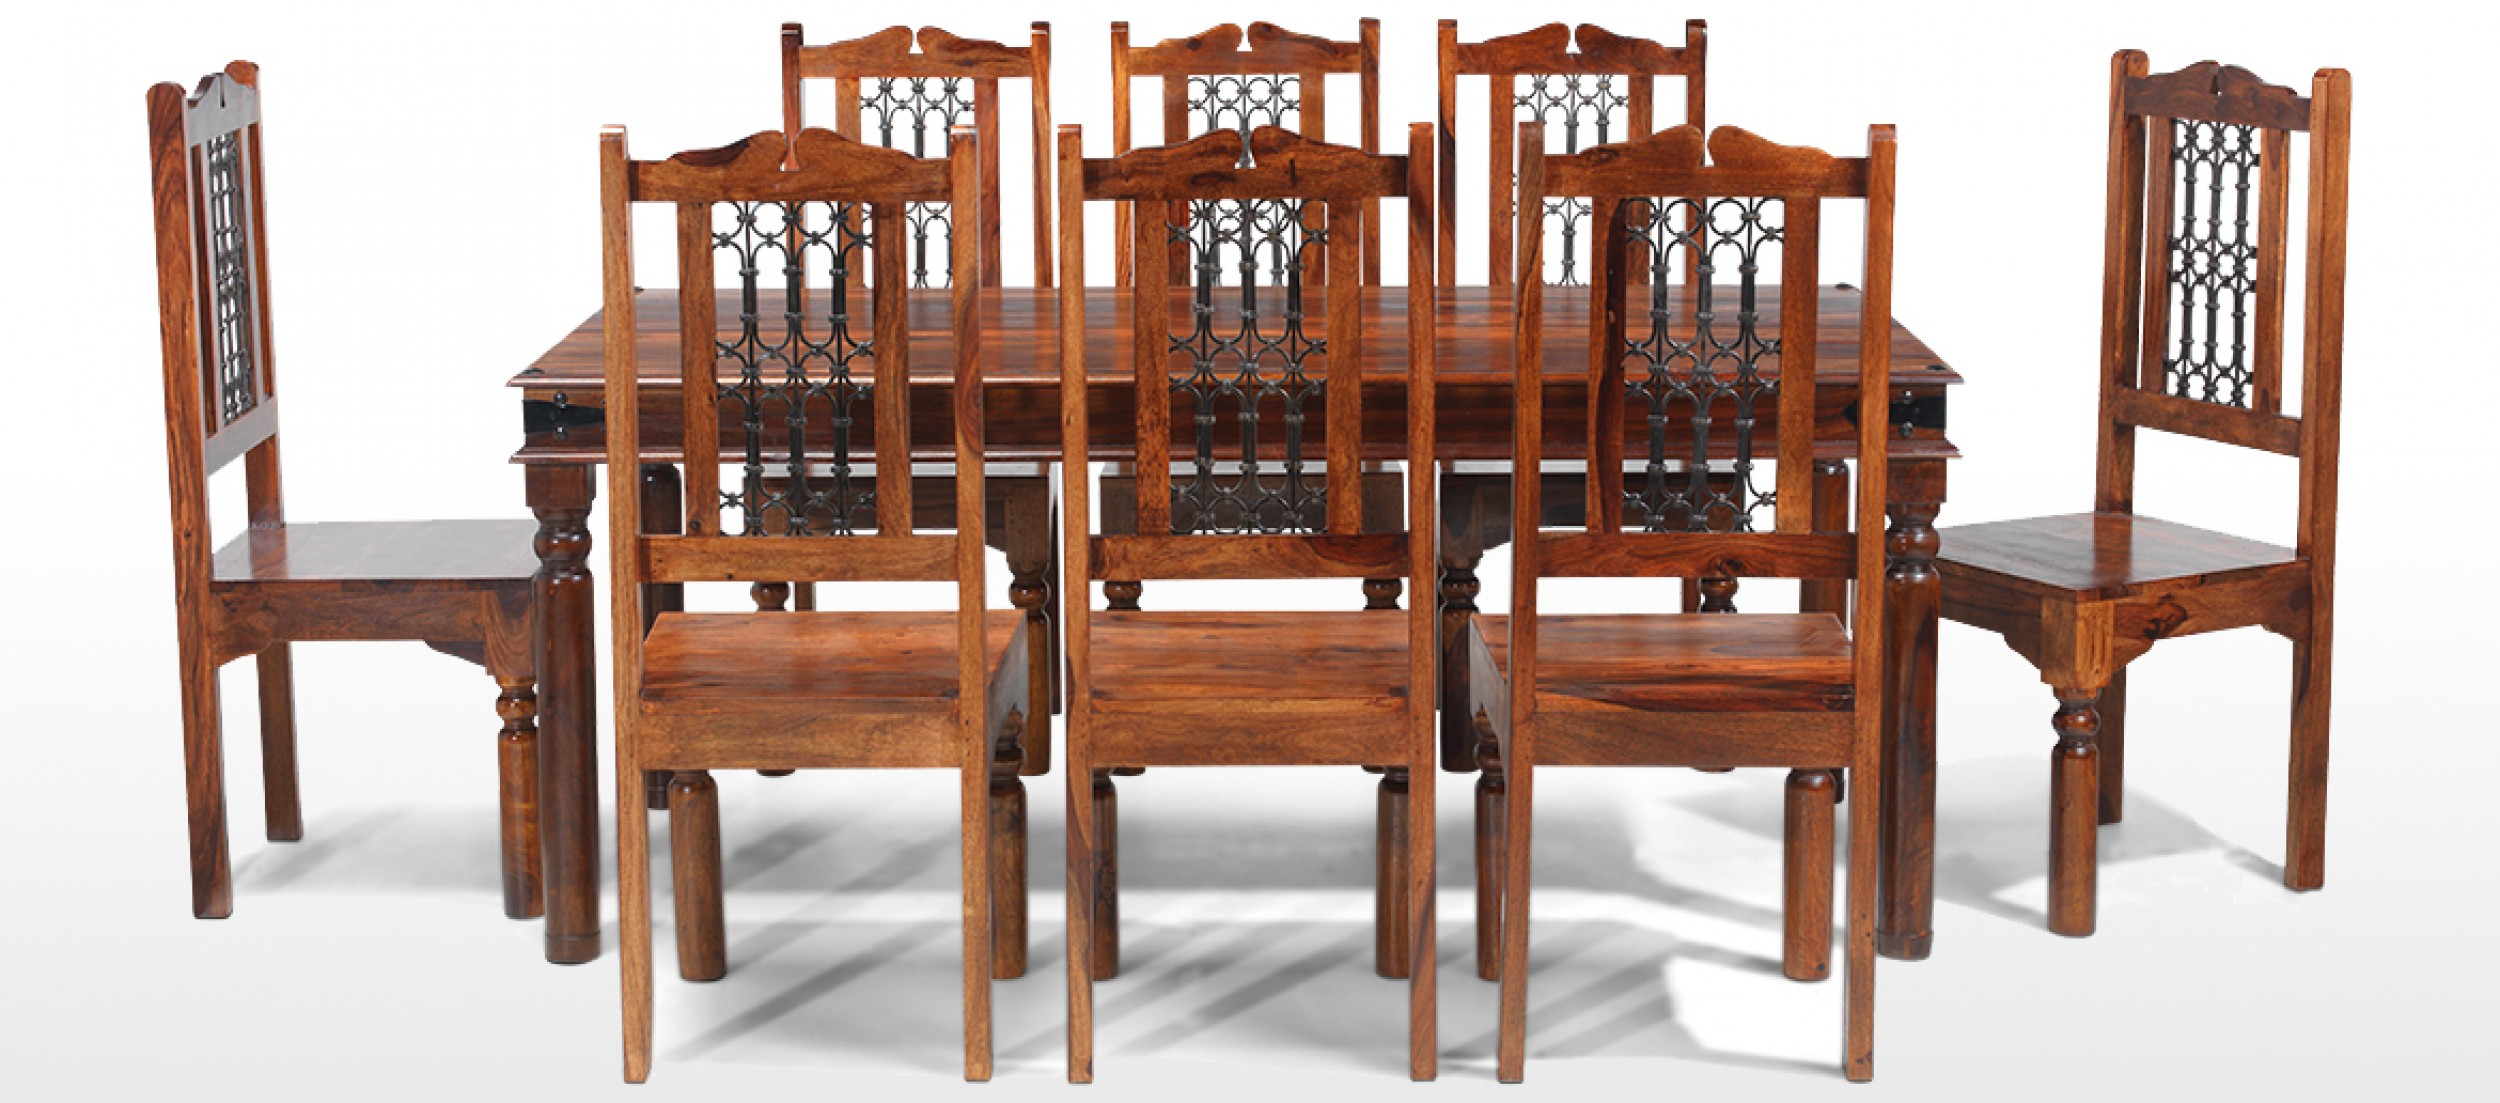 jali sheesham 180 cm thakat dining table and 8 chairs quercus living jali sheesham 180 cm thakat dining table and 8 chairs